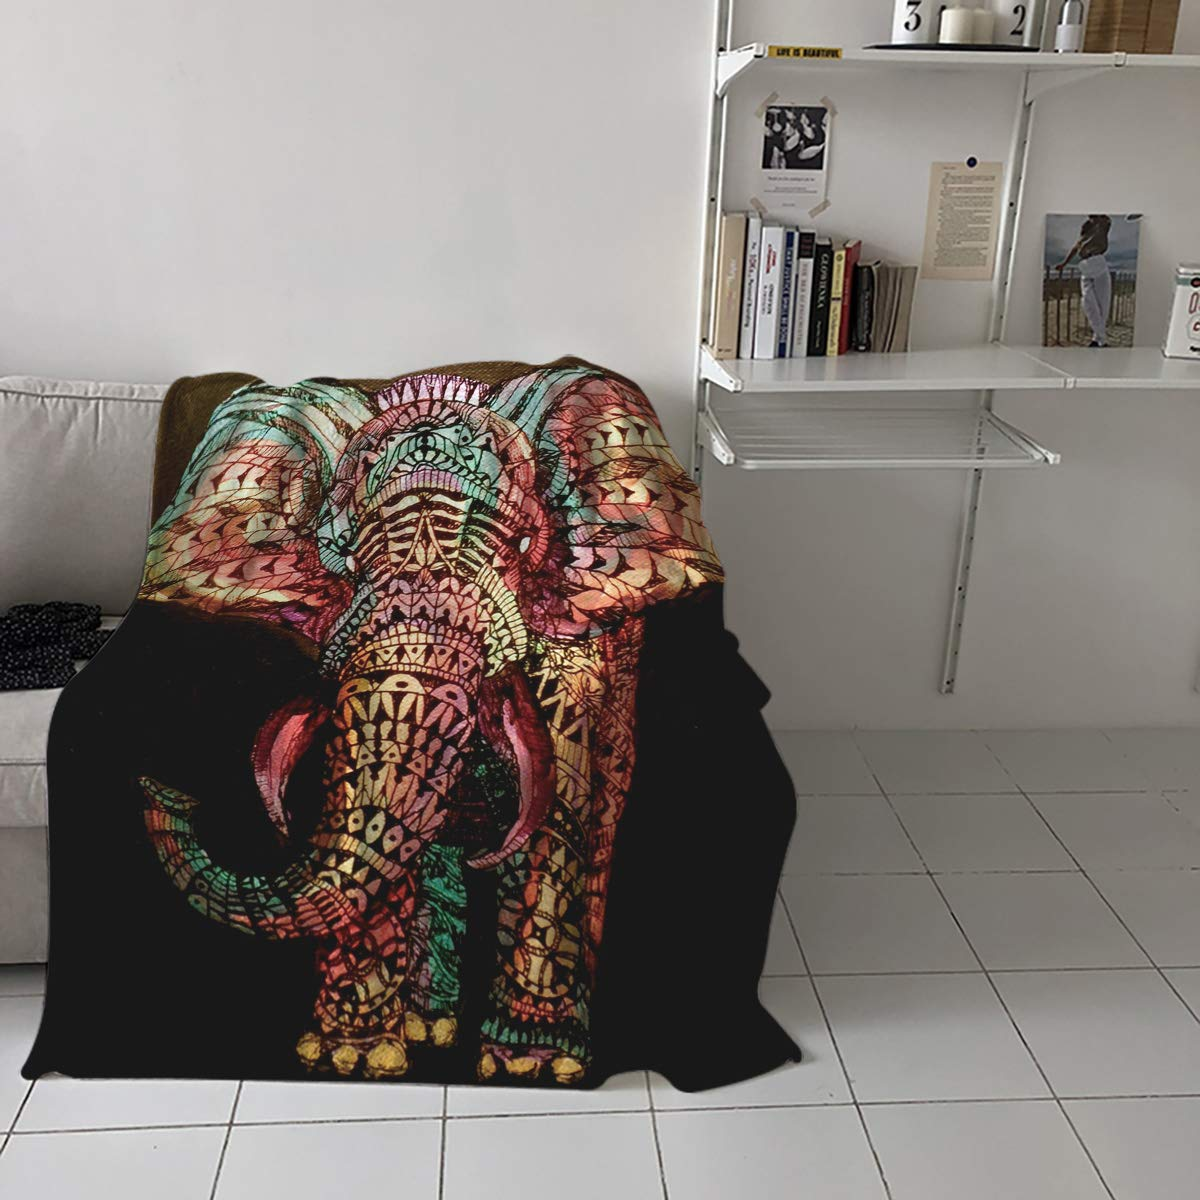 CDM product Luxury Flannel Fleece Throw Blanket Super Soft Warm Fuzzy Plush Microfiber Lightweight Throw Couch Chair Bed Blankets for Fall Winter Spring - King 60x80 Inch Boho Tribe Elephant small thumbnail image